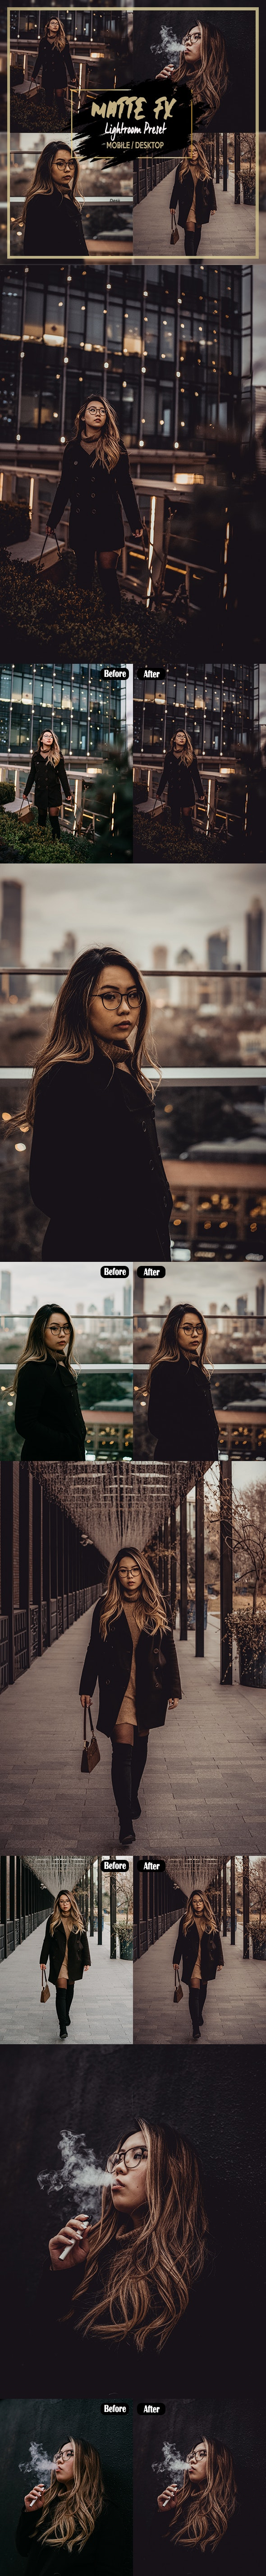 Matte fx - Lightroom Preset - Lightroom Presets Add-ons